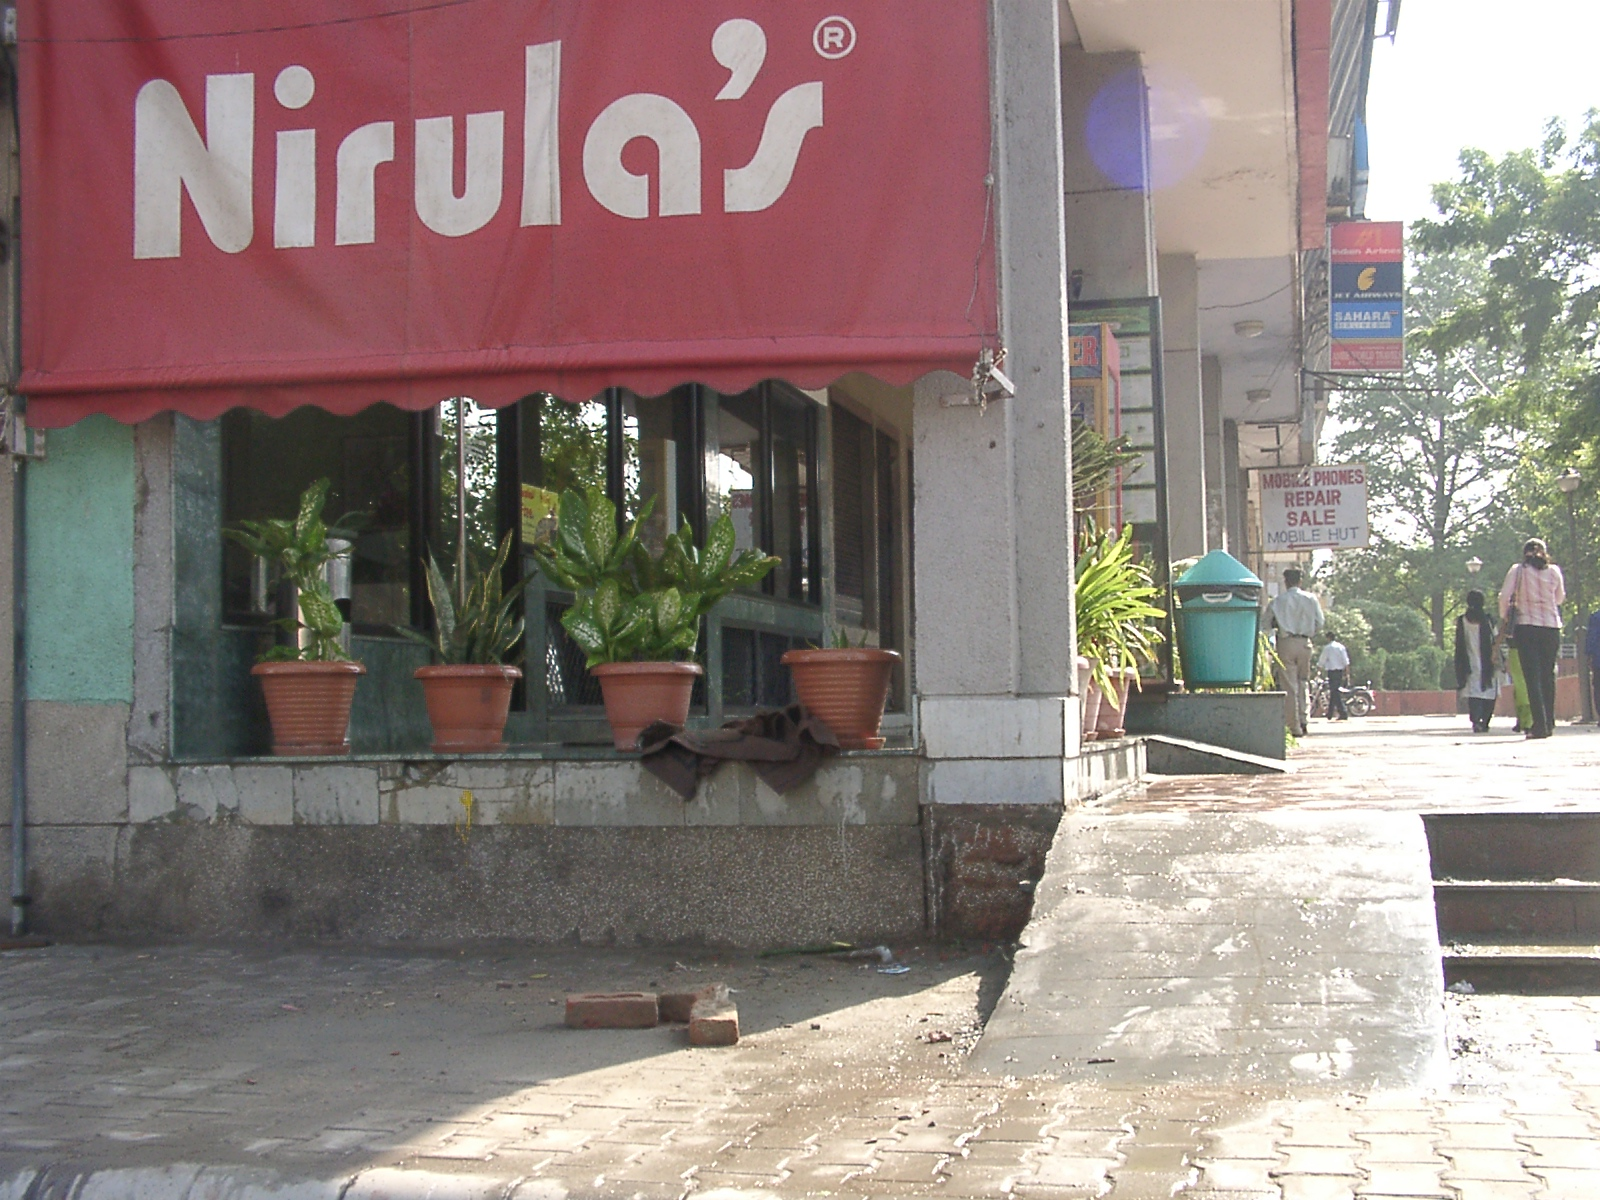 Eat at Nirulas!